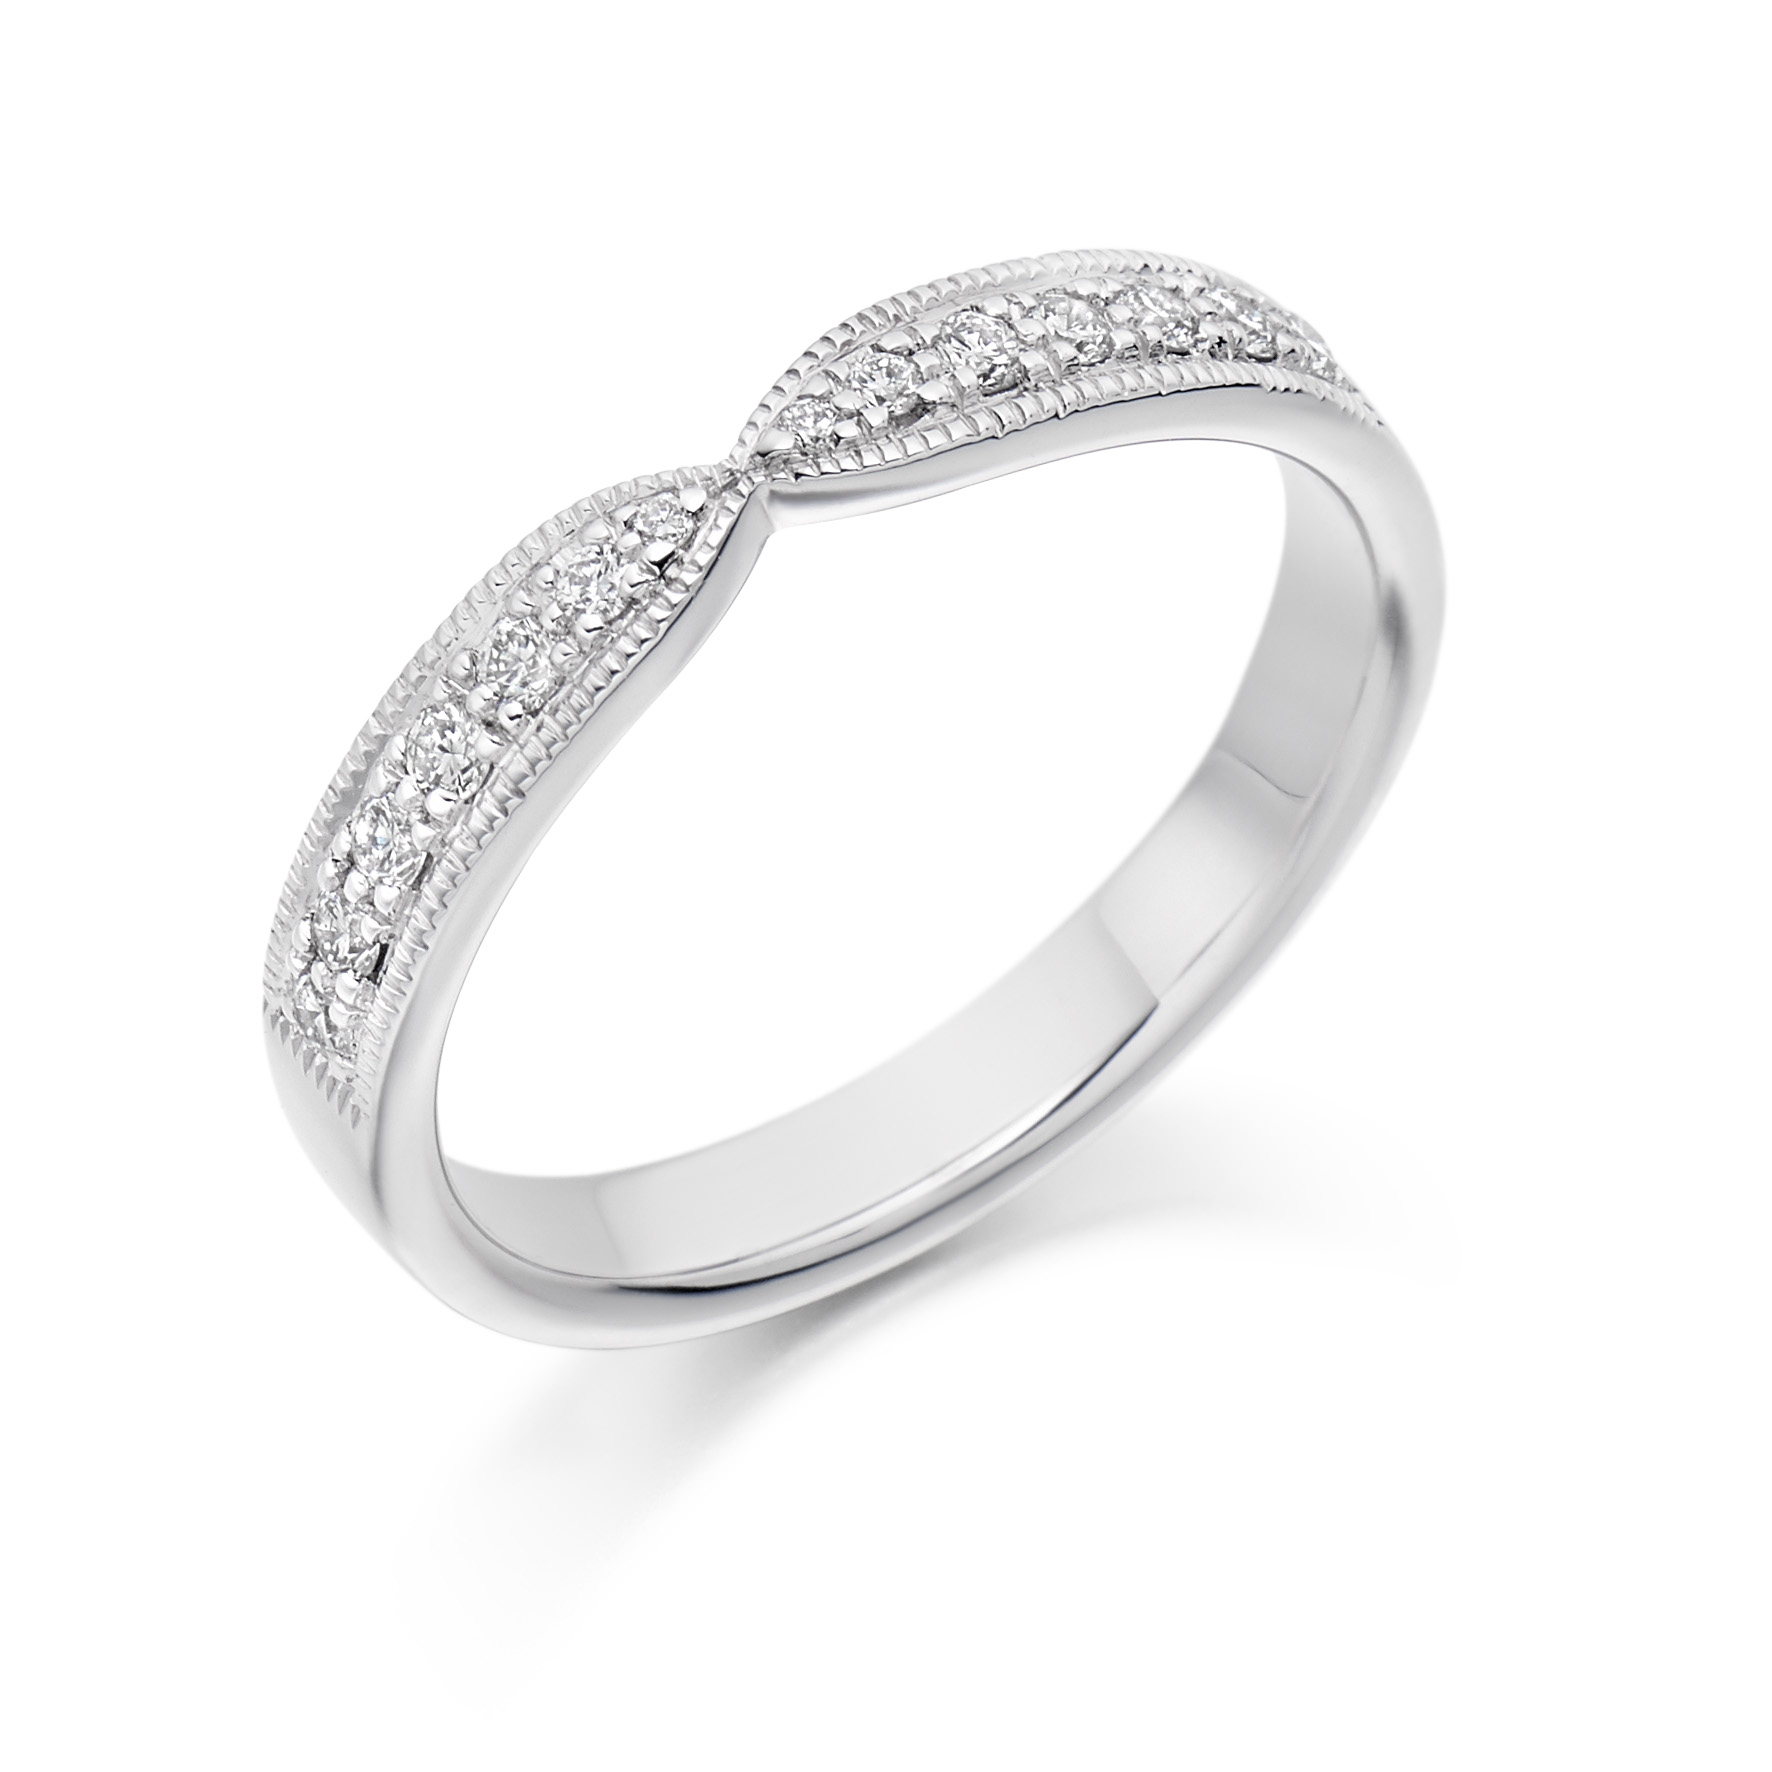 0.20ct brilliant cut diamond curved & shaped wedding ring in 18ct gold